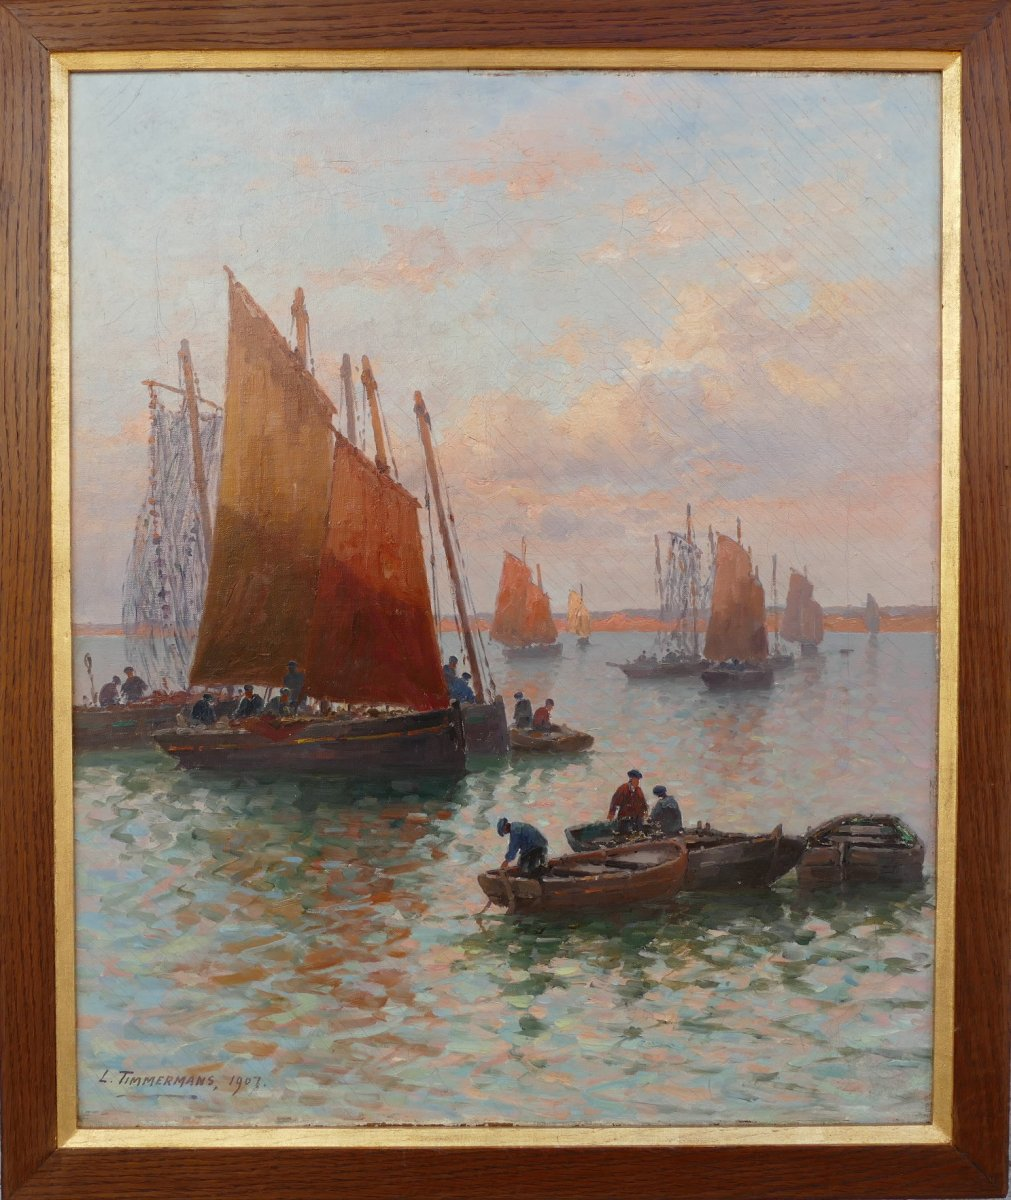 Timmermans Louis French School 19th Marine Sardinian Boats Oil On Canvas Signed Dated